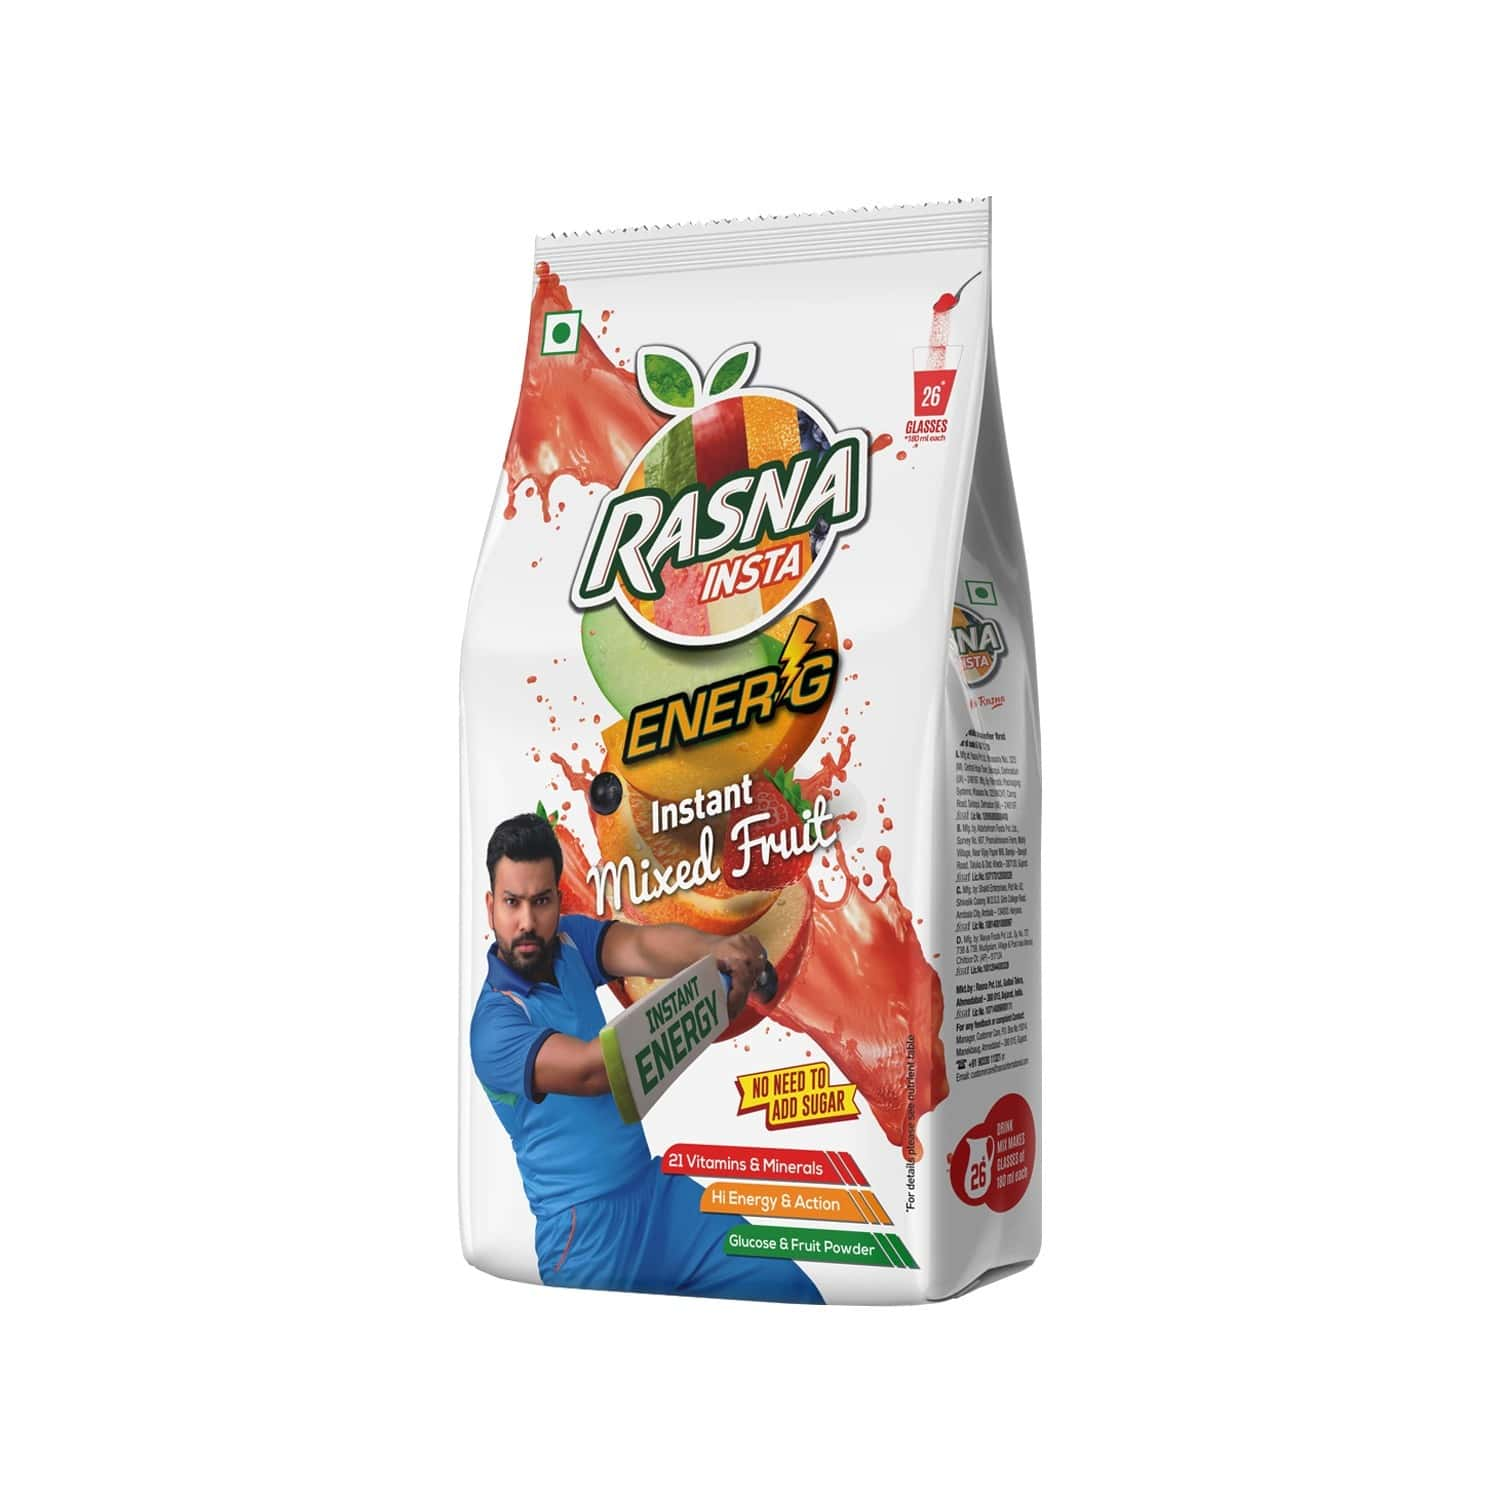 Rasna Insta Drink Concentrate Mix 500 G Pack - Mixed Fruit